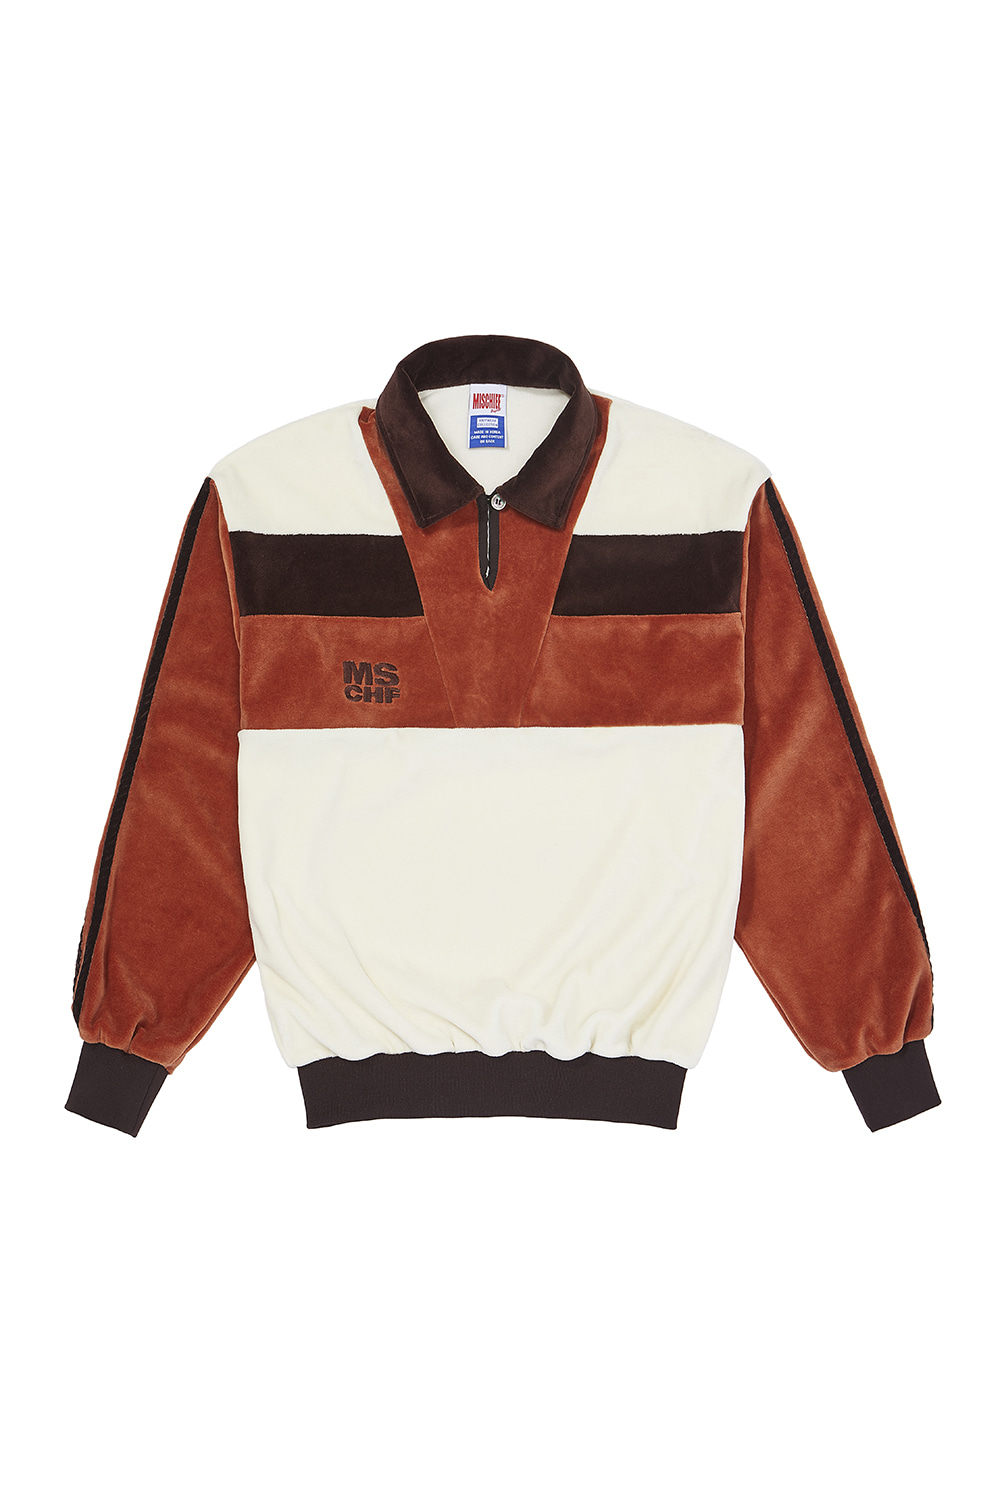 VELOUR COLOR BLOCK JERSEY_brown multi